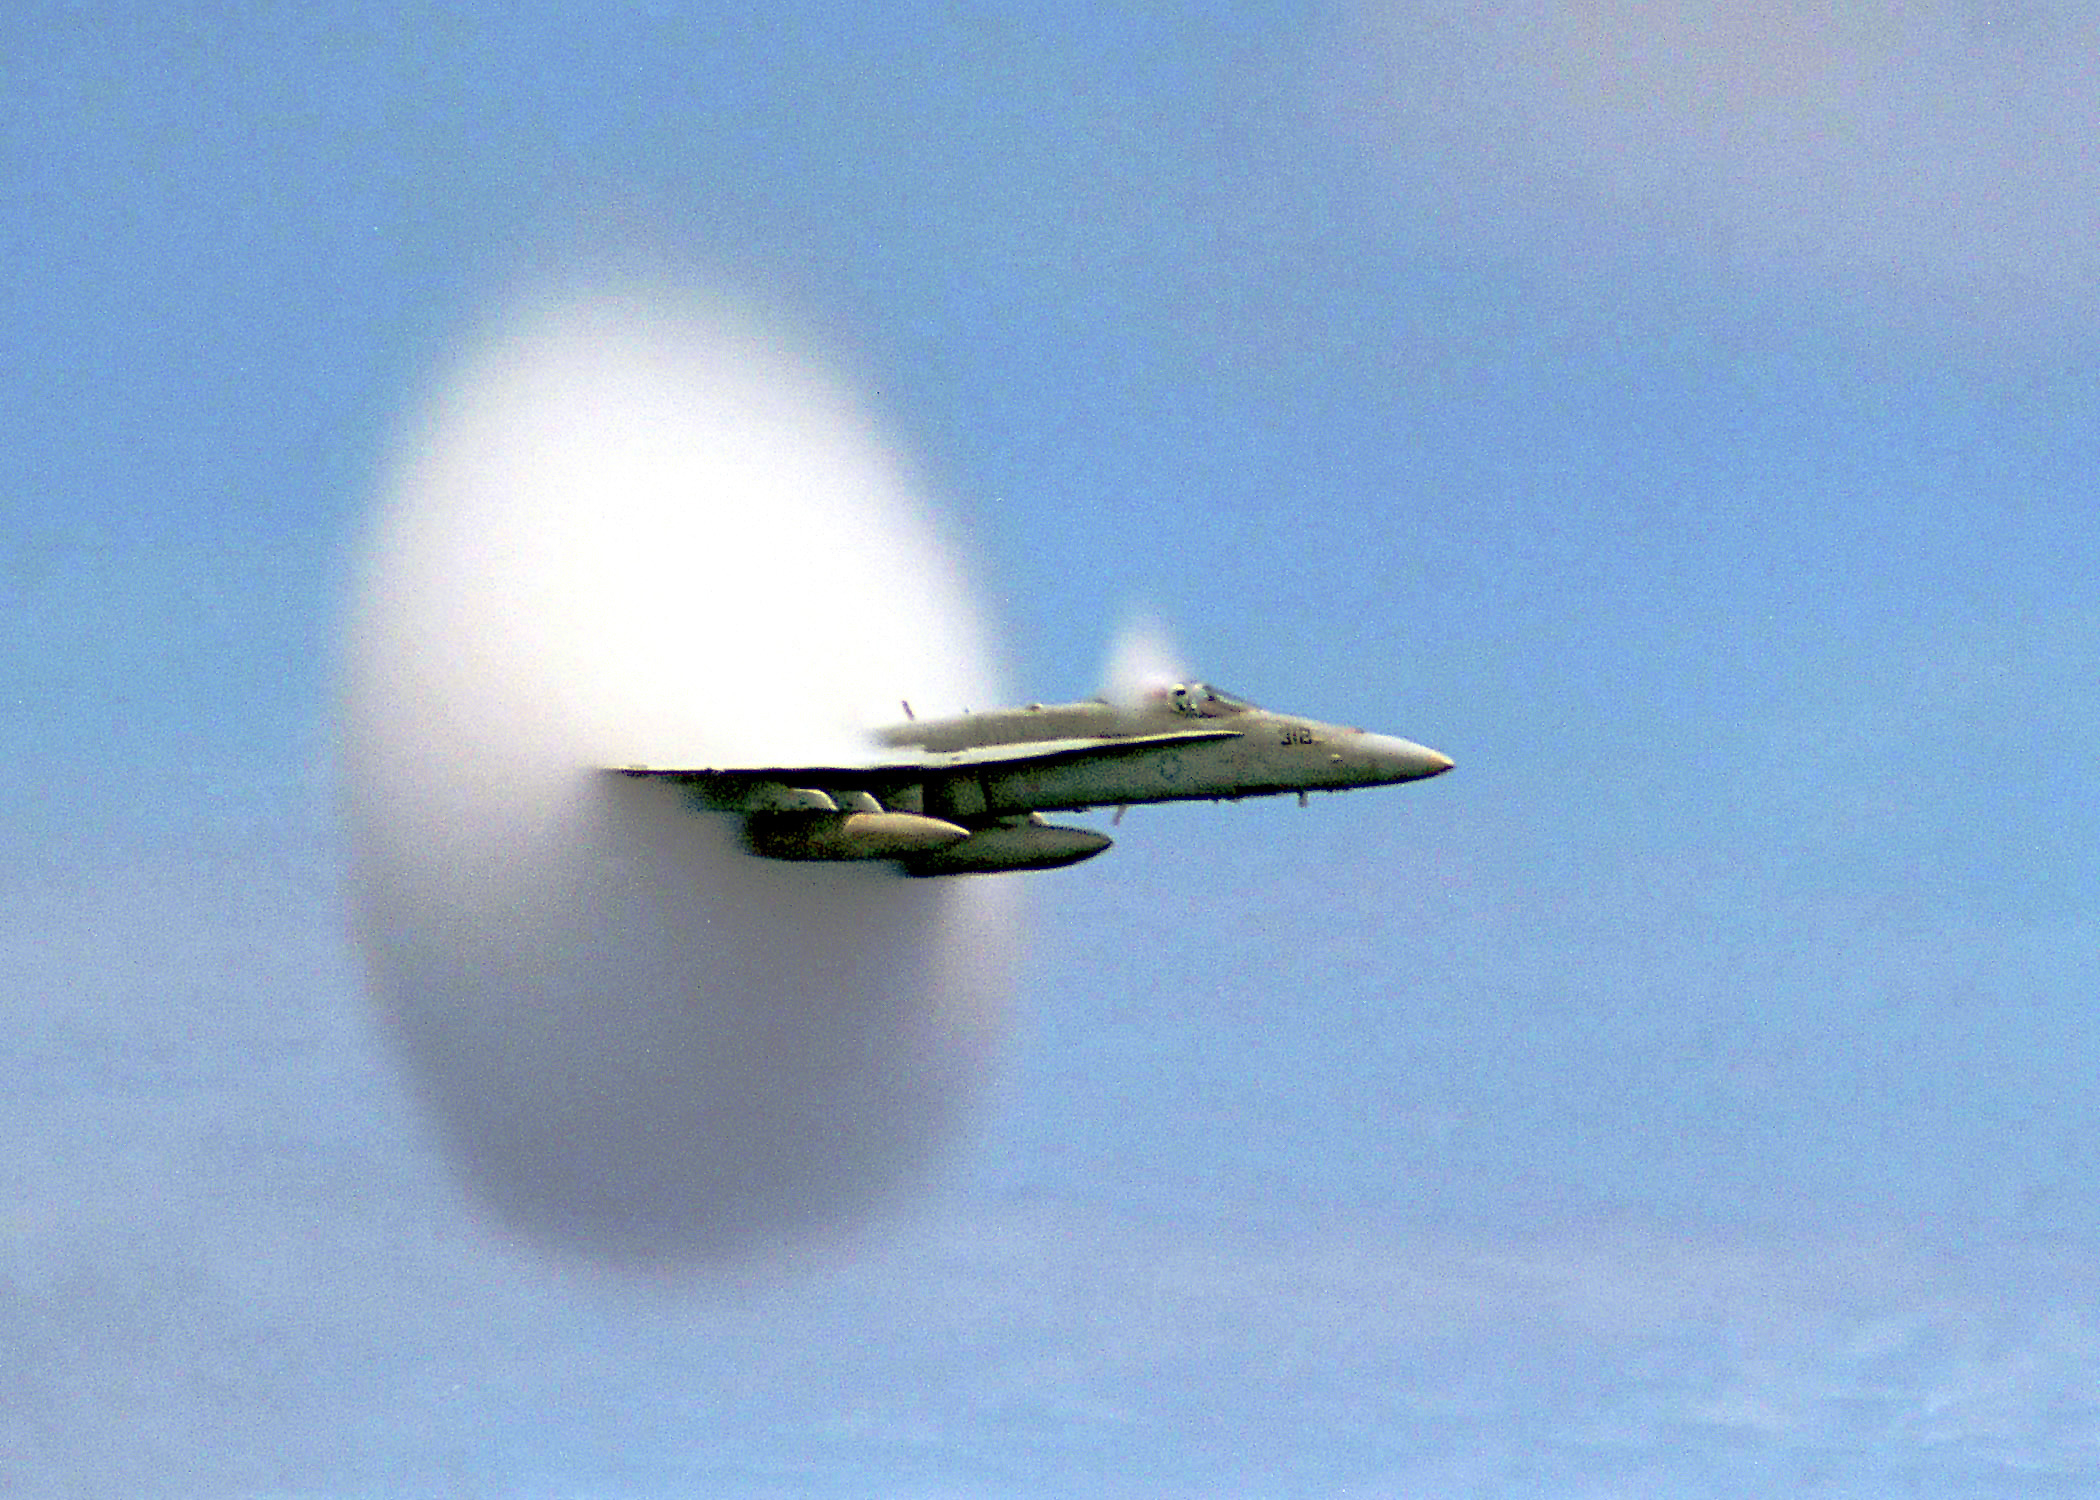 http://upload.wikimedia.org/wikipedia/commons/d/d0/FA-18_Hornet_breaking_sound_barrier_%287_July_1999%29.jpg